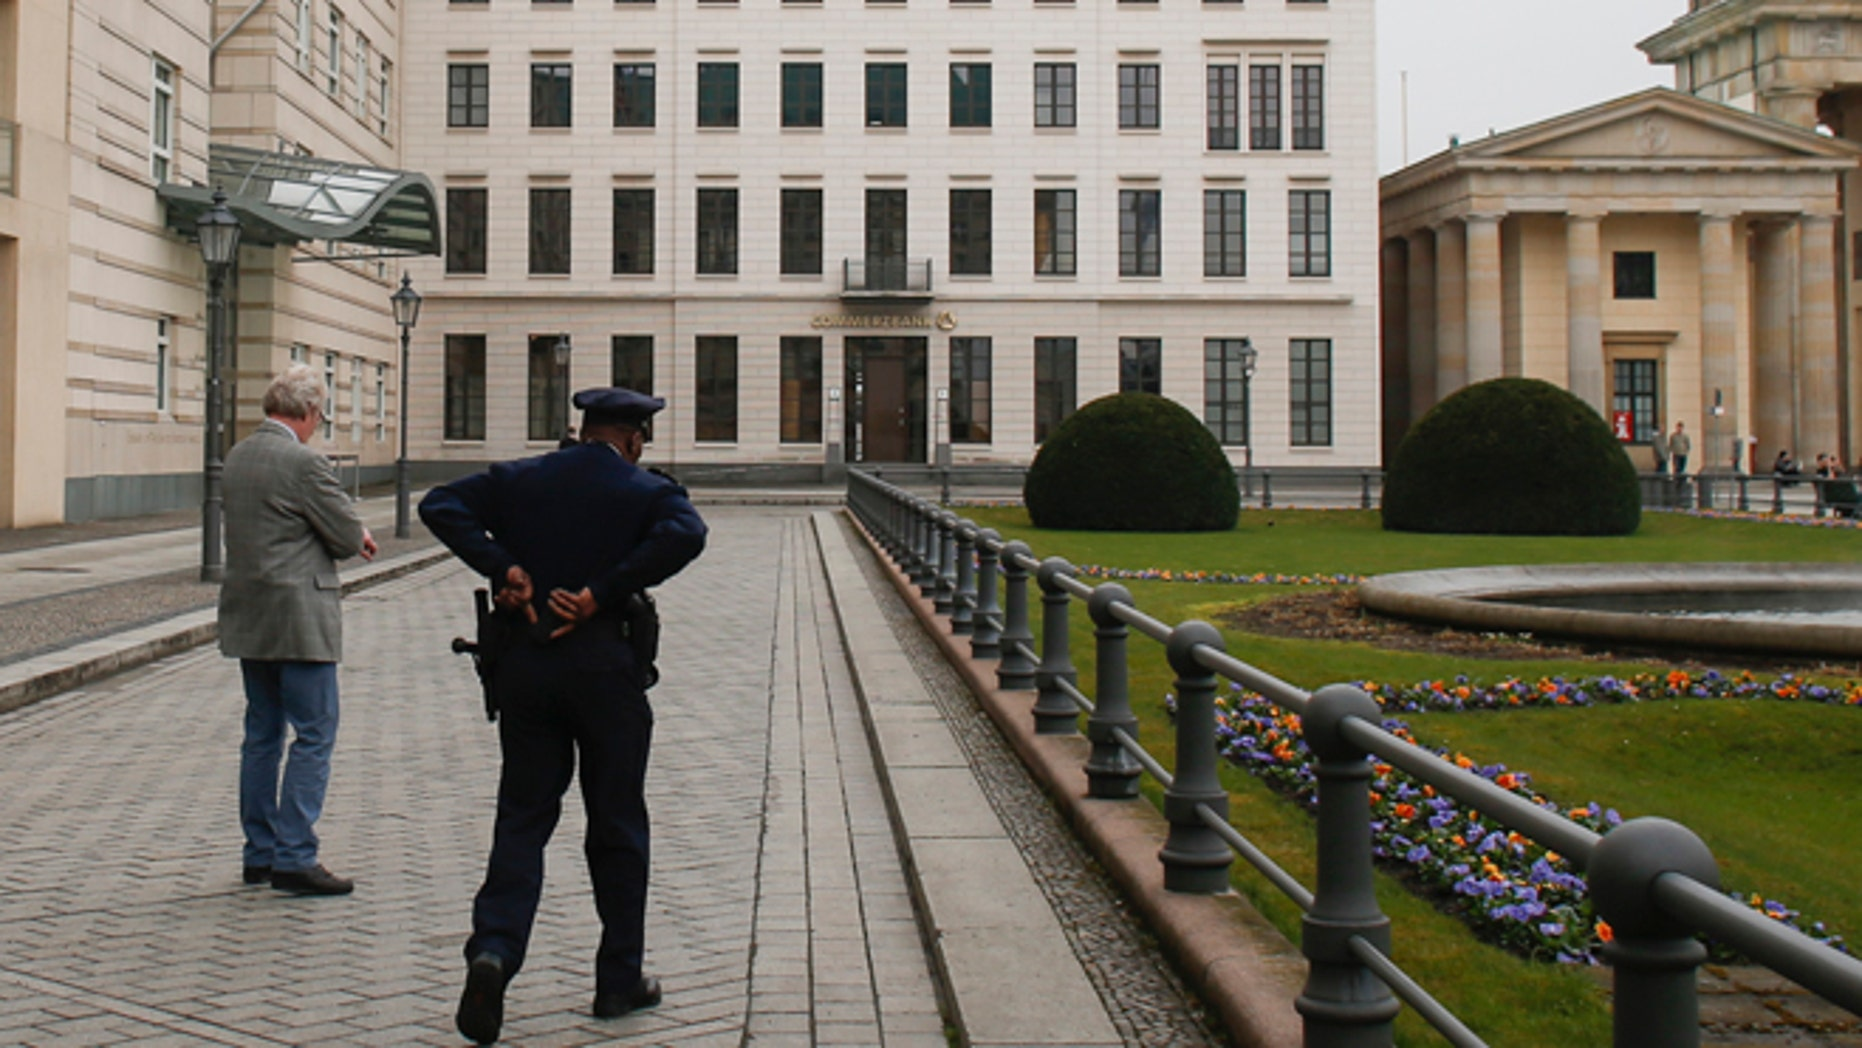 April 16, 2013: In this file photo, United States security officers patrol in front of the  U.S. embassy in Berlin, Germany. Germany took the dramatic step Thursday of asking the top U.S. intelligence official in Berlin to leave the country, following two reported cases of suspected U.S. spying and the yearlong spat over eavesdropping by the National Security Agency.